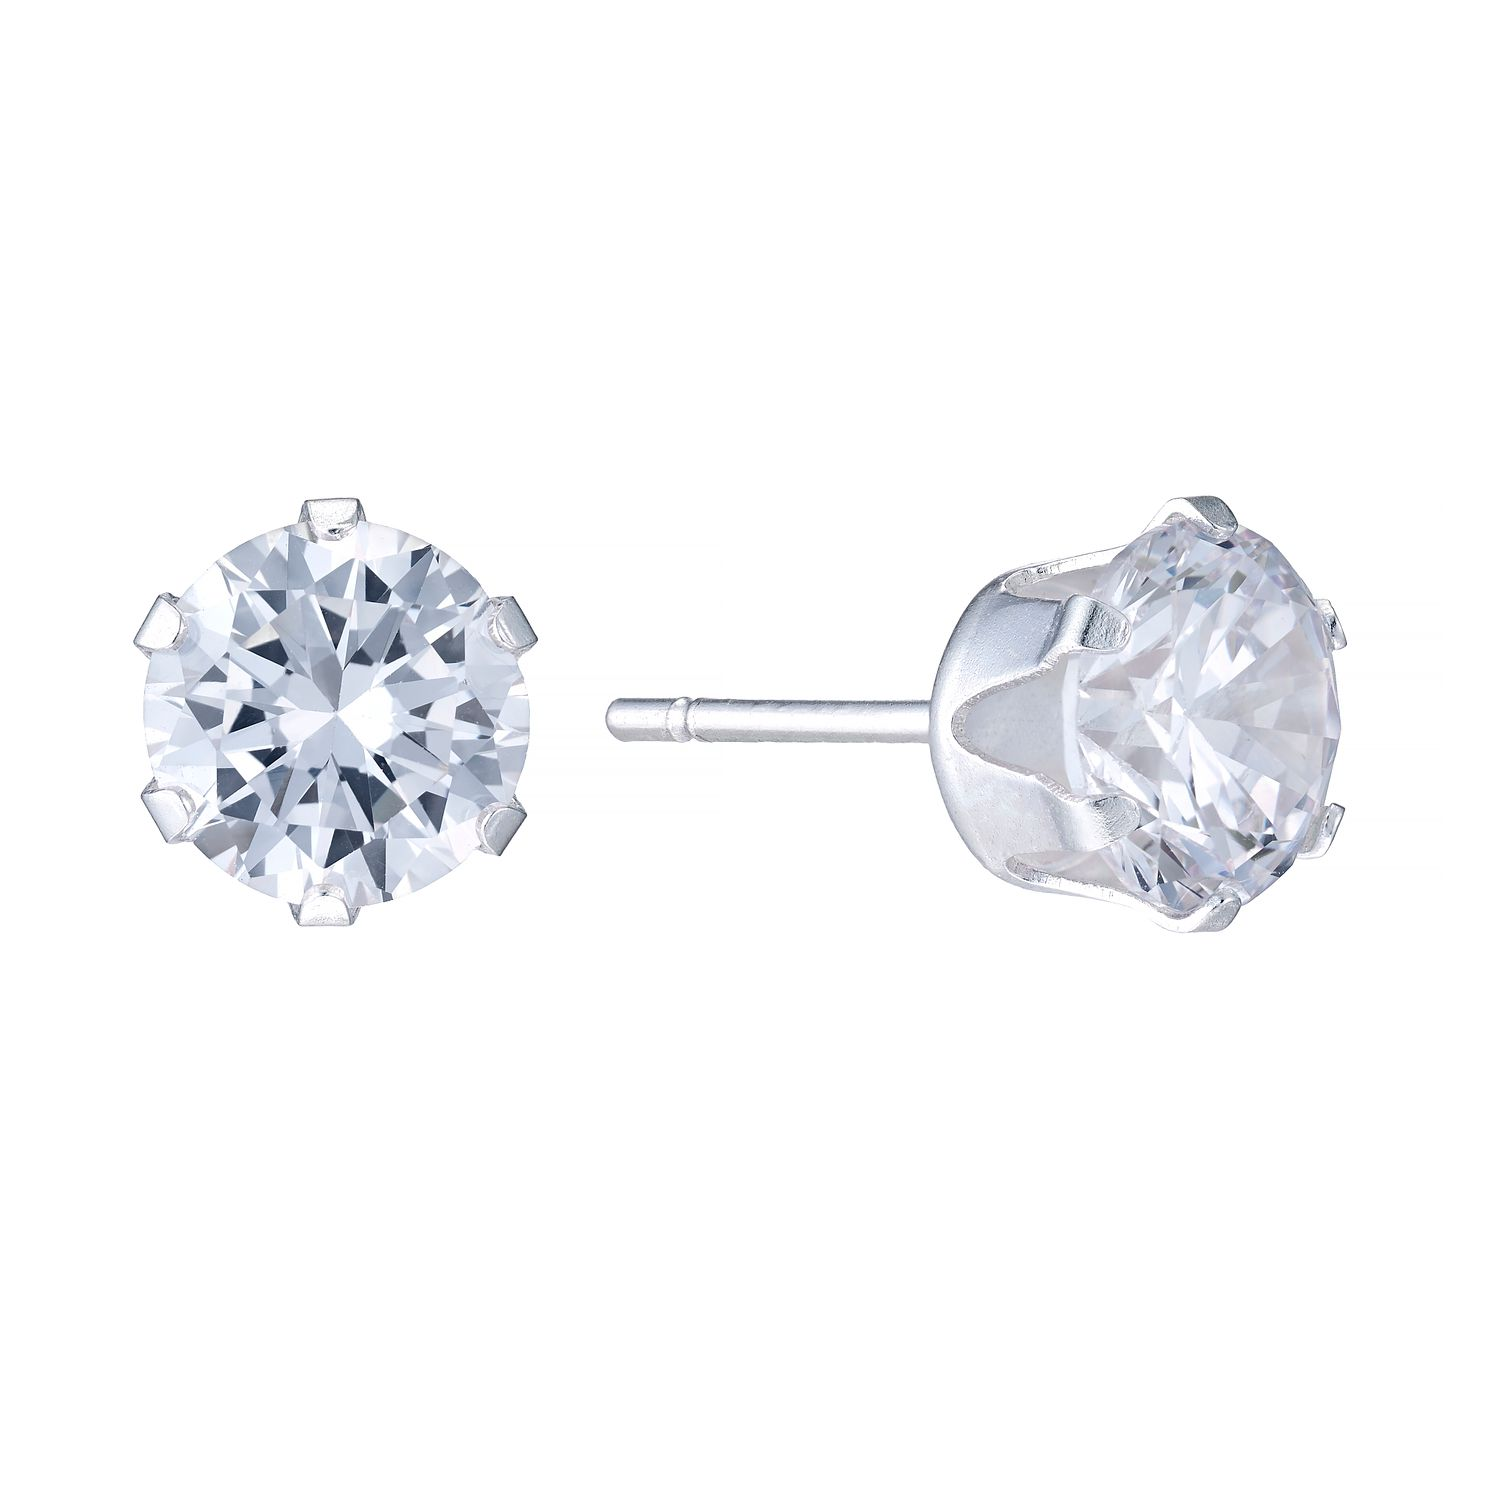 Sterling Silver Cubic Zirconia 7mm Stud Earrings - Product number 4402065